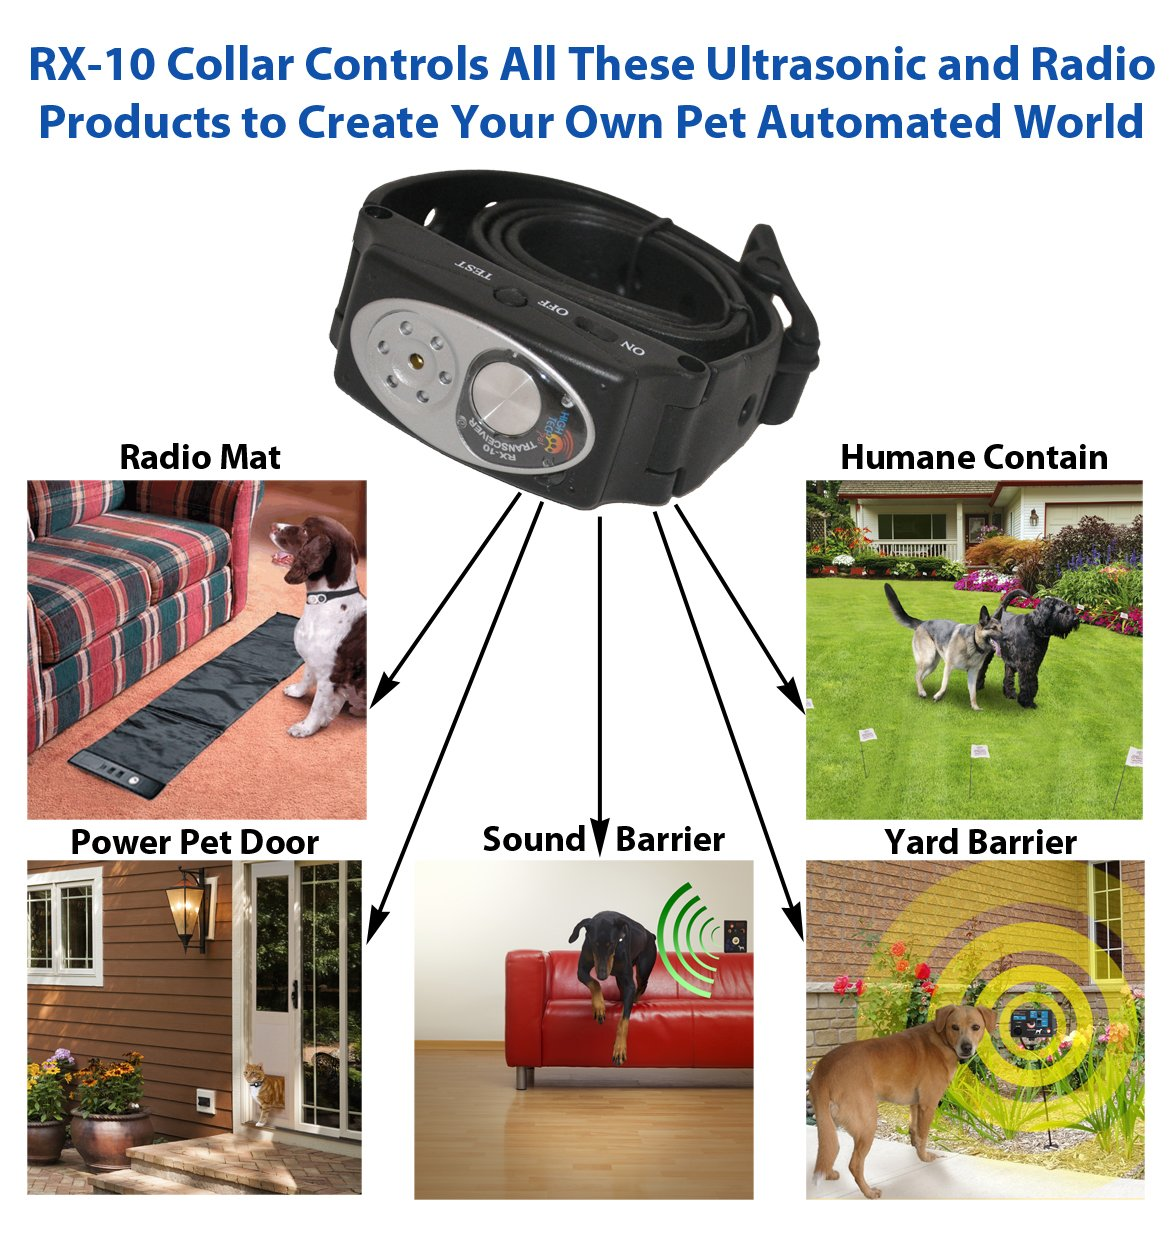 Humane Contain X-10 Rechargeable Electronic Fence + Sound Barrier SB-3 3-Station Indoor Sonic Dog & Cat Fence